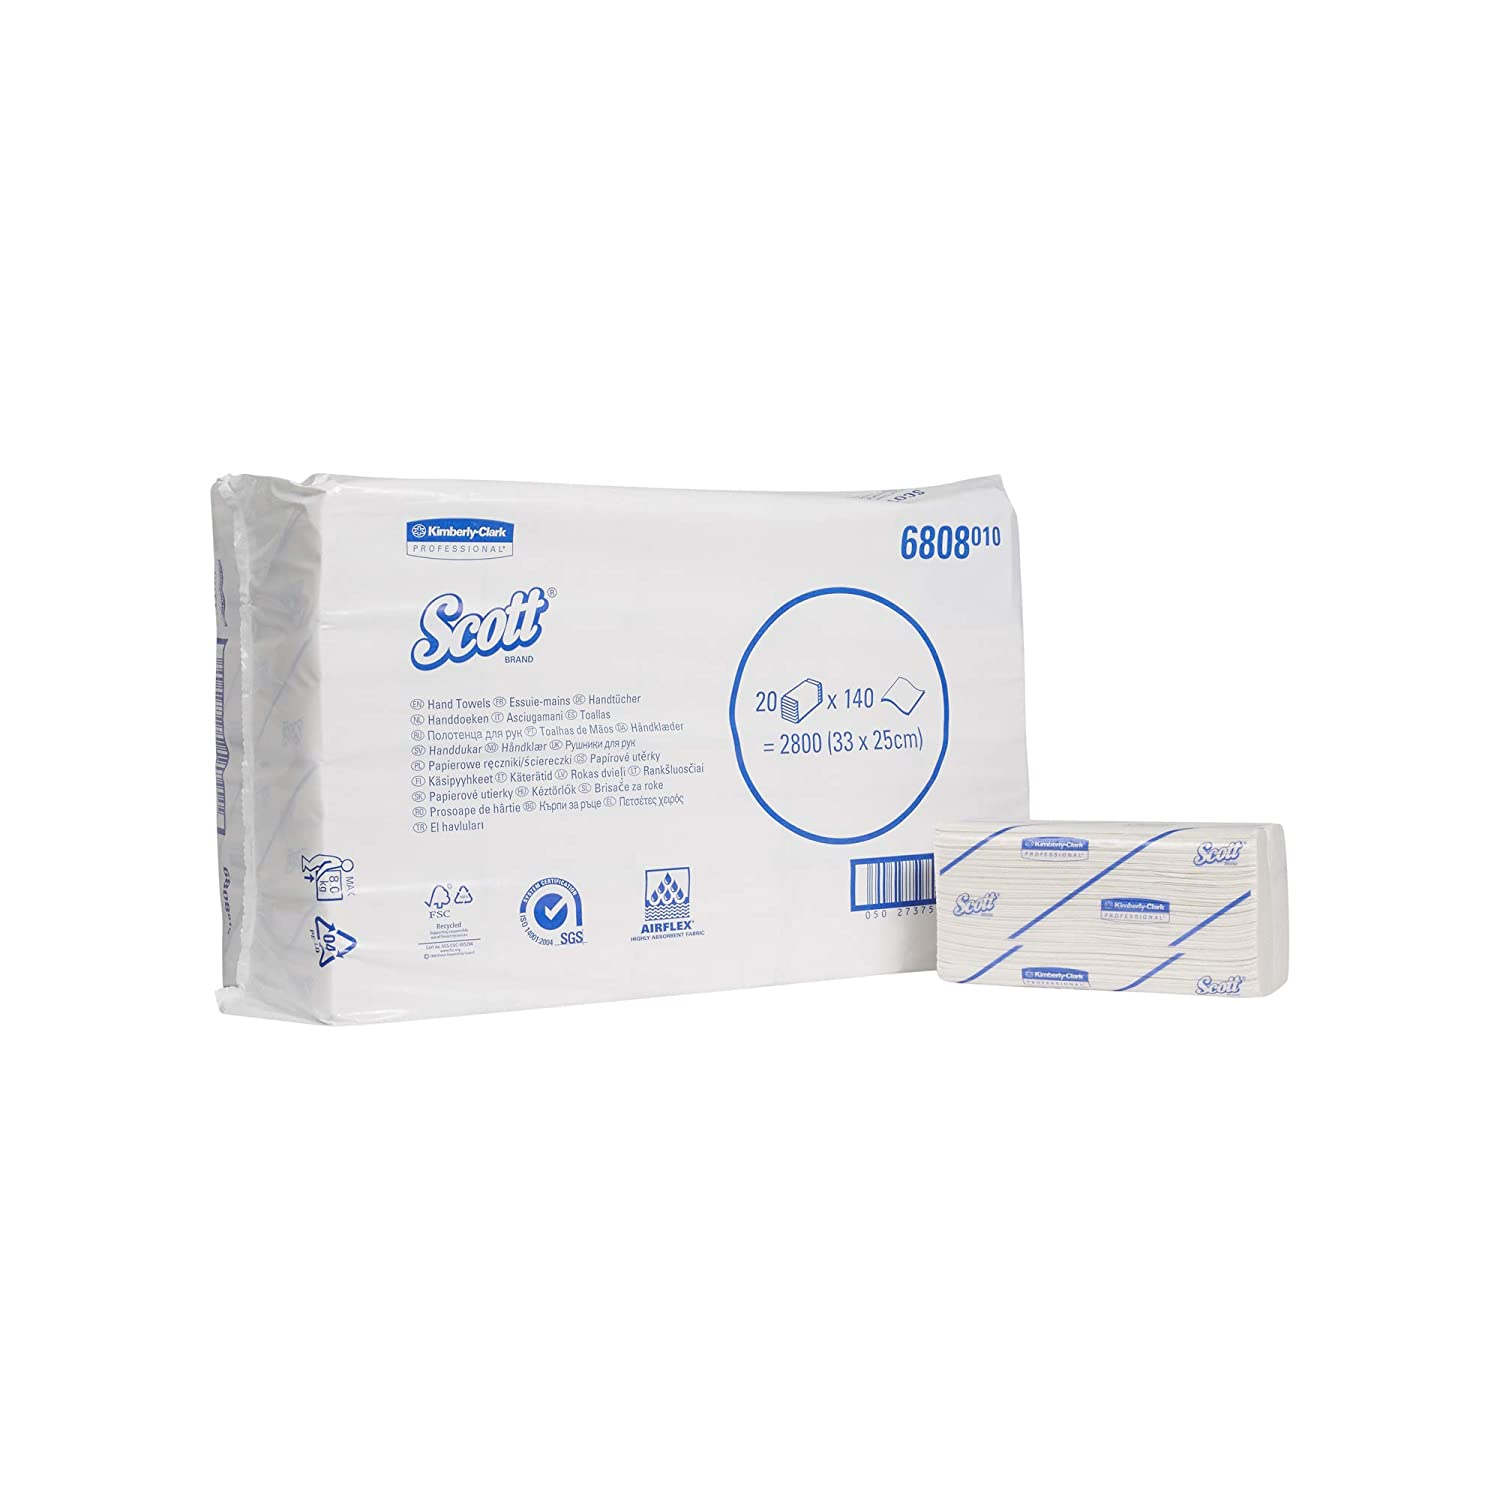 15 Packs x 320 Sheets Scott InterFolded Hand Towels White 6775 1 Ply